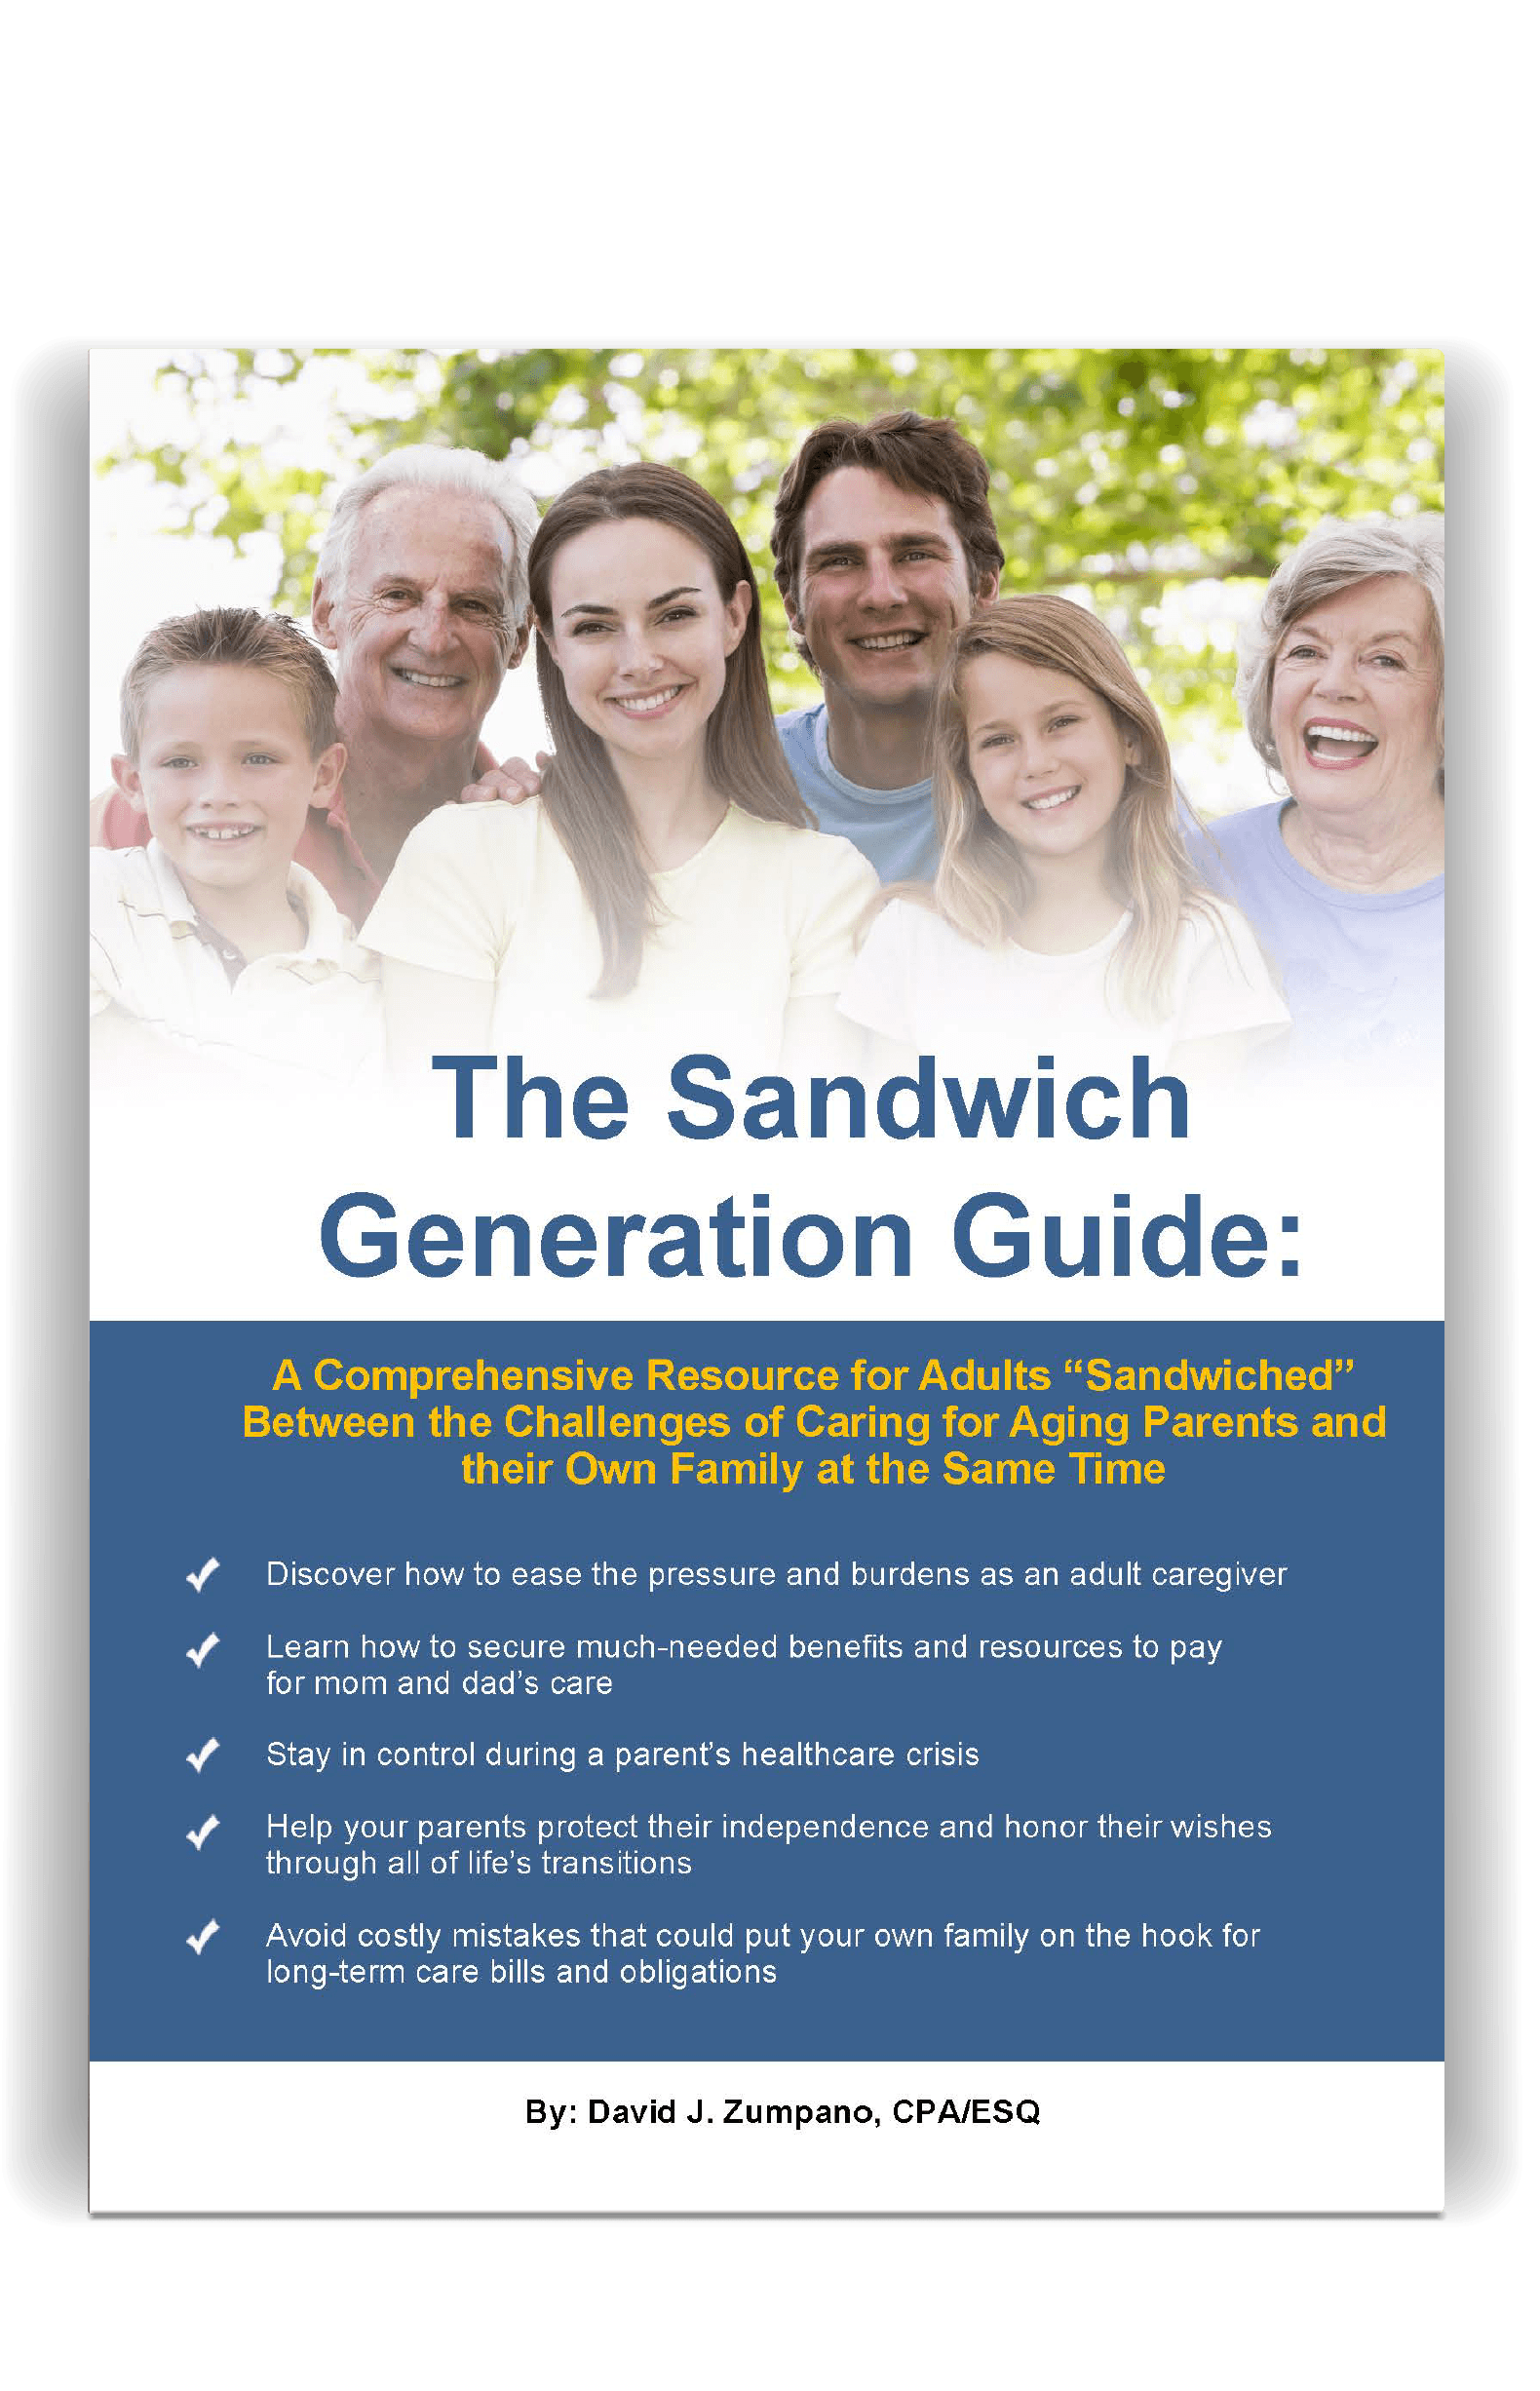 The Sandwich Generation Guide cover